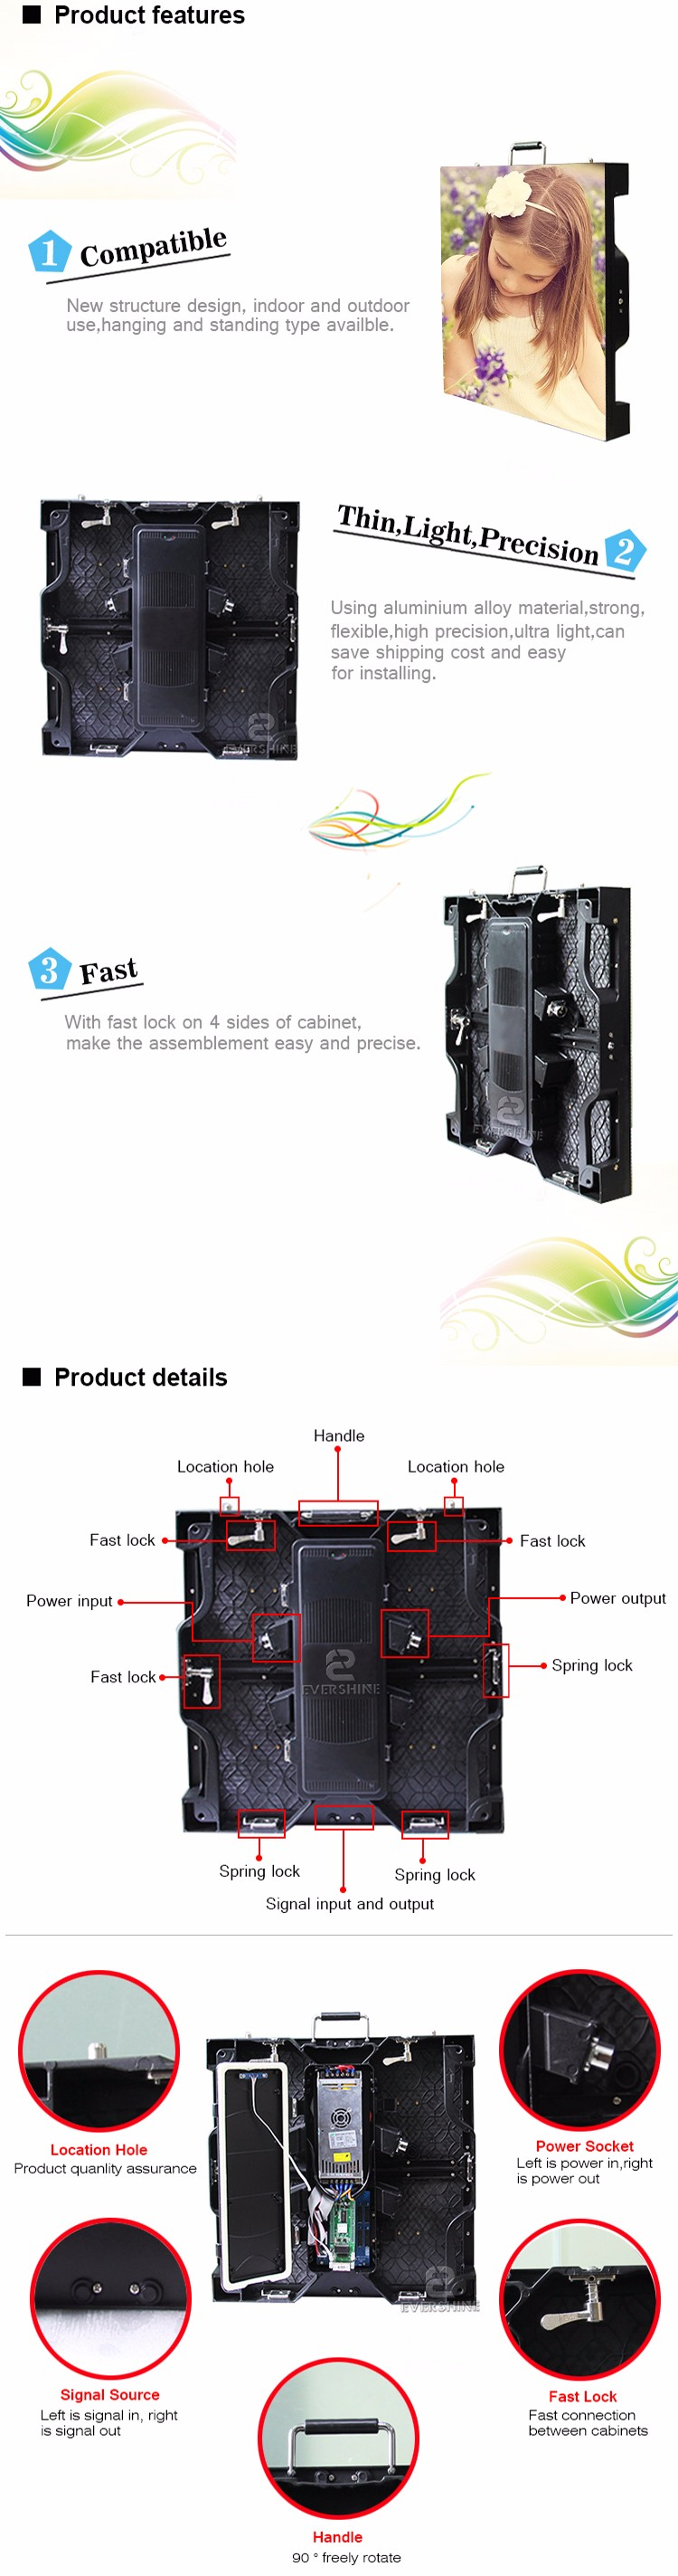 light cabinet mesh led module die-casting aluminum P4.81 indoor using hd display